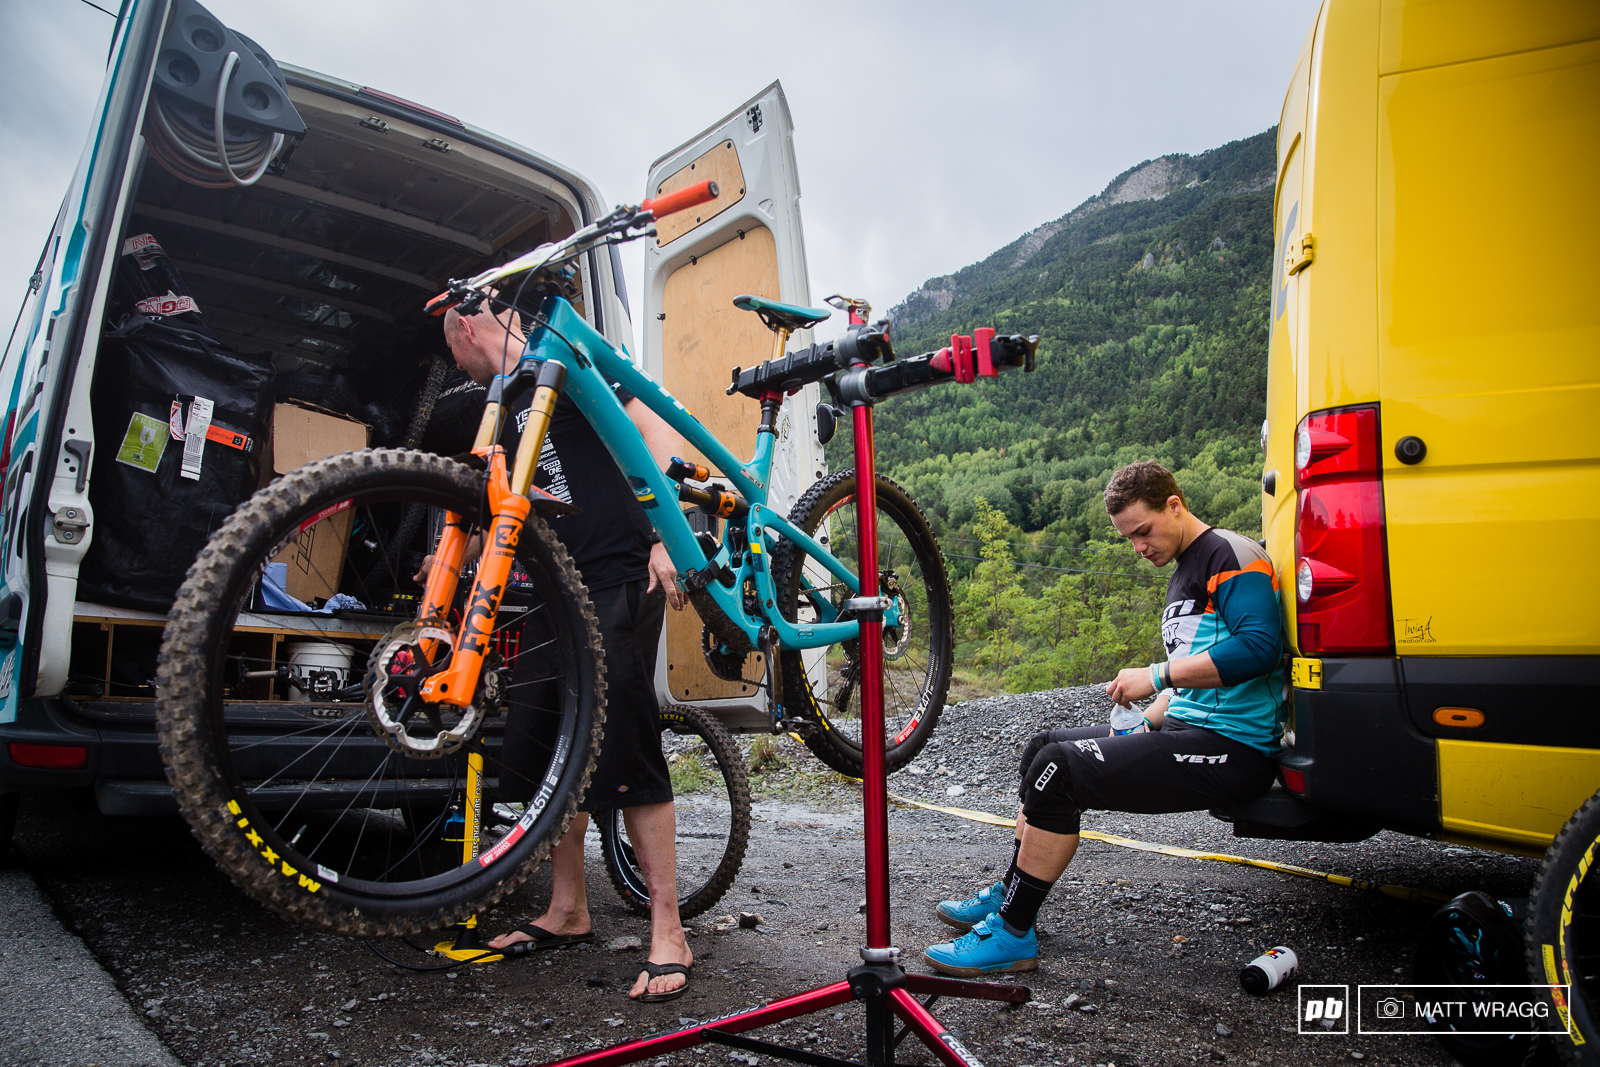 Richie Rude had an awkward stage one so took the chance to stop at the tech zone before the next stage to put on a faster rear tyre and talk things through with his team.